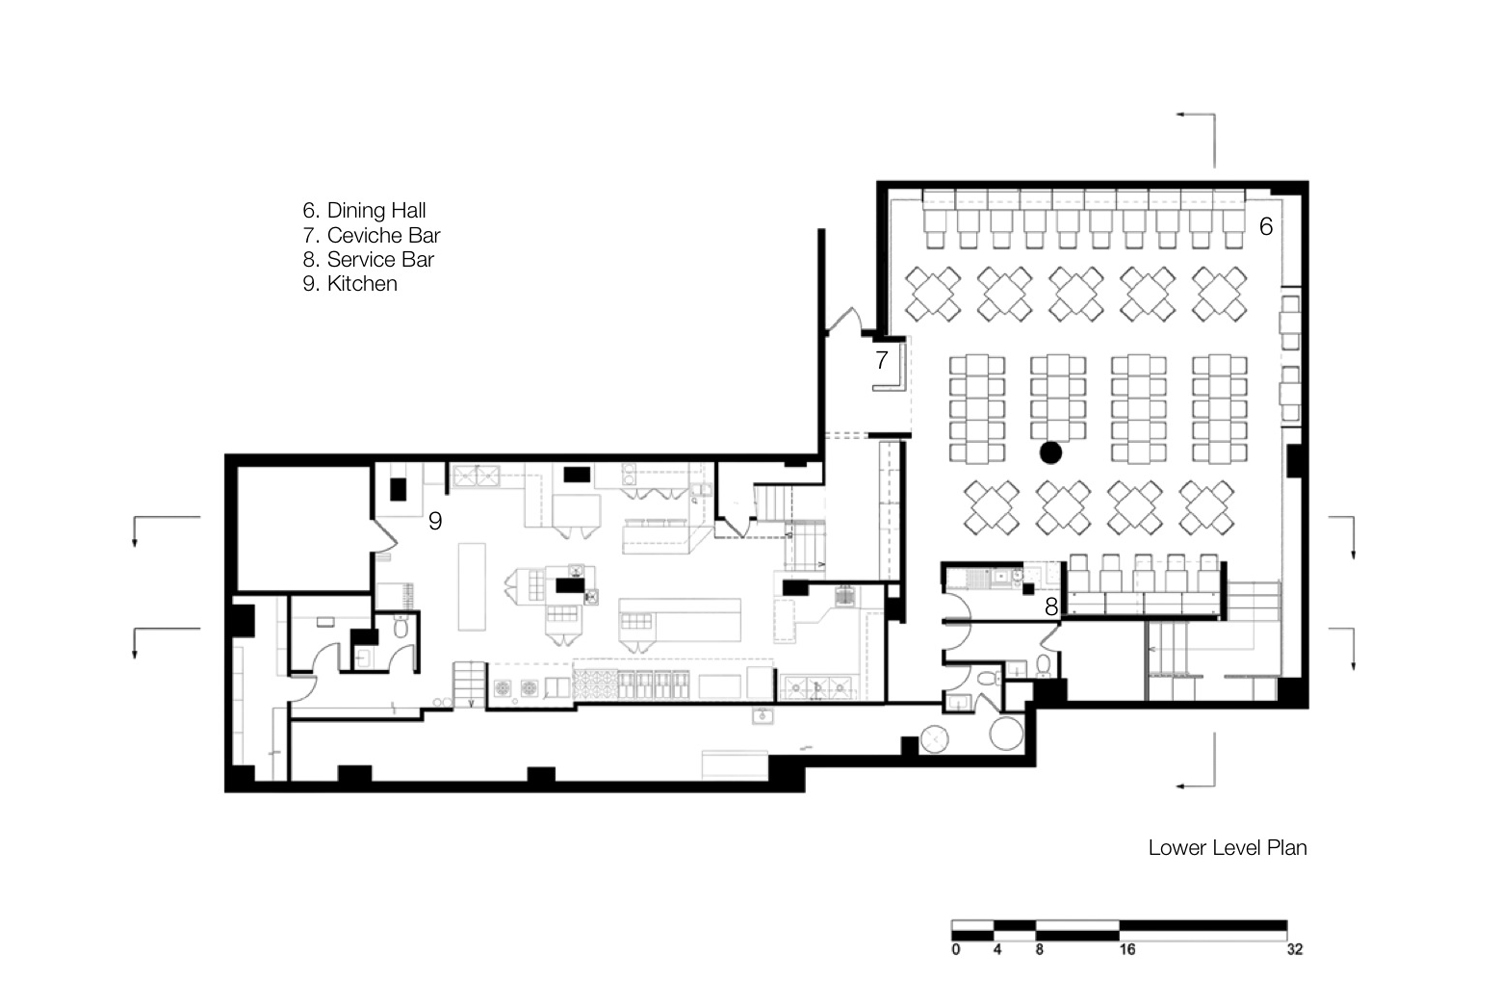 Pio pio restaurant by sebastian marsical studio karmatrendz - Small restaurant floor plan design ...